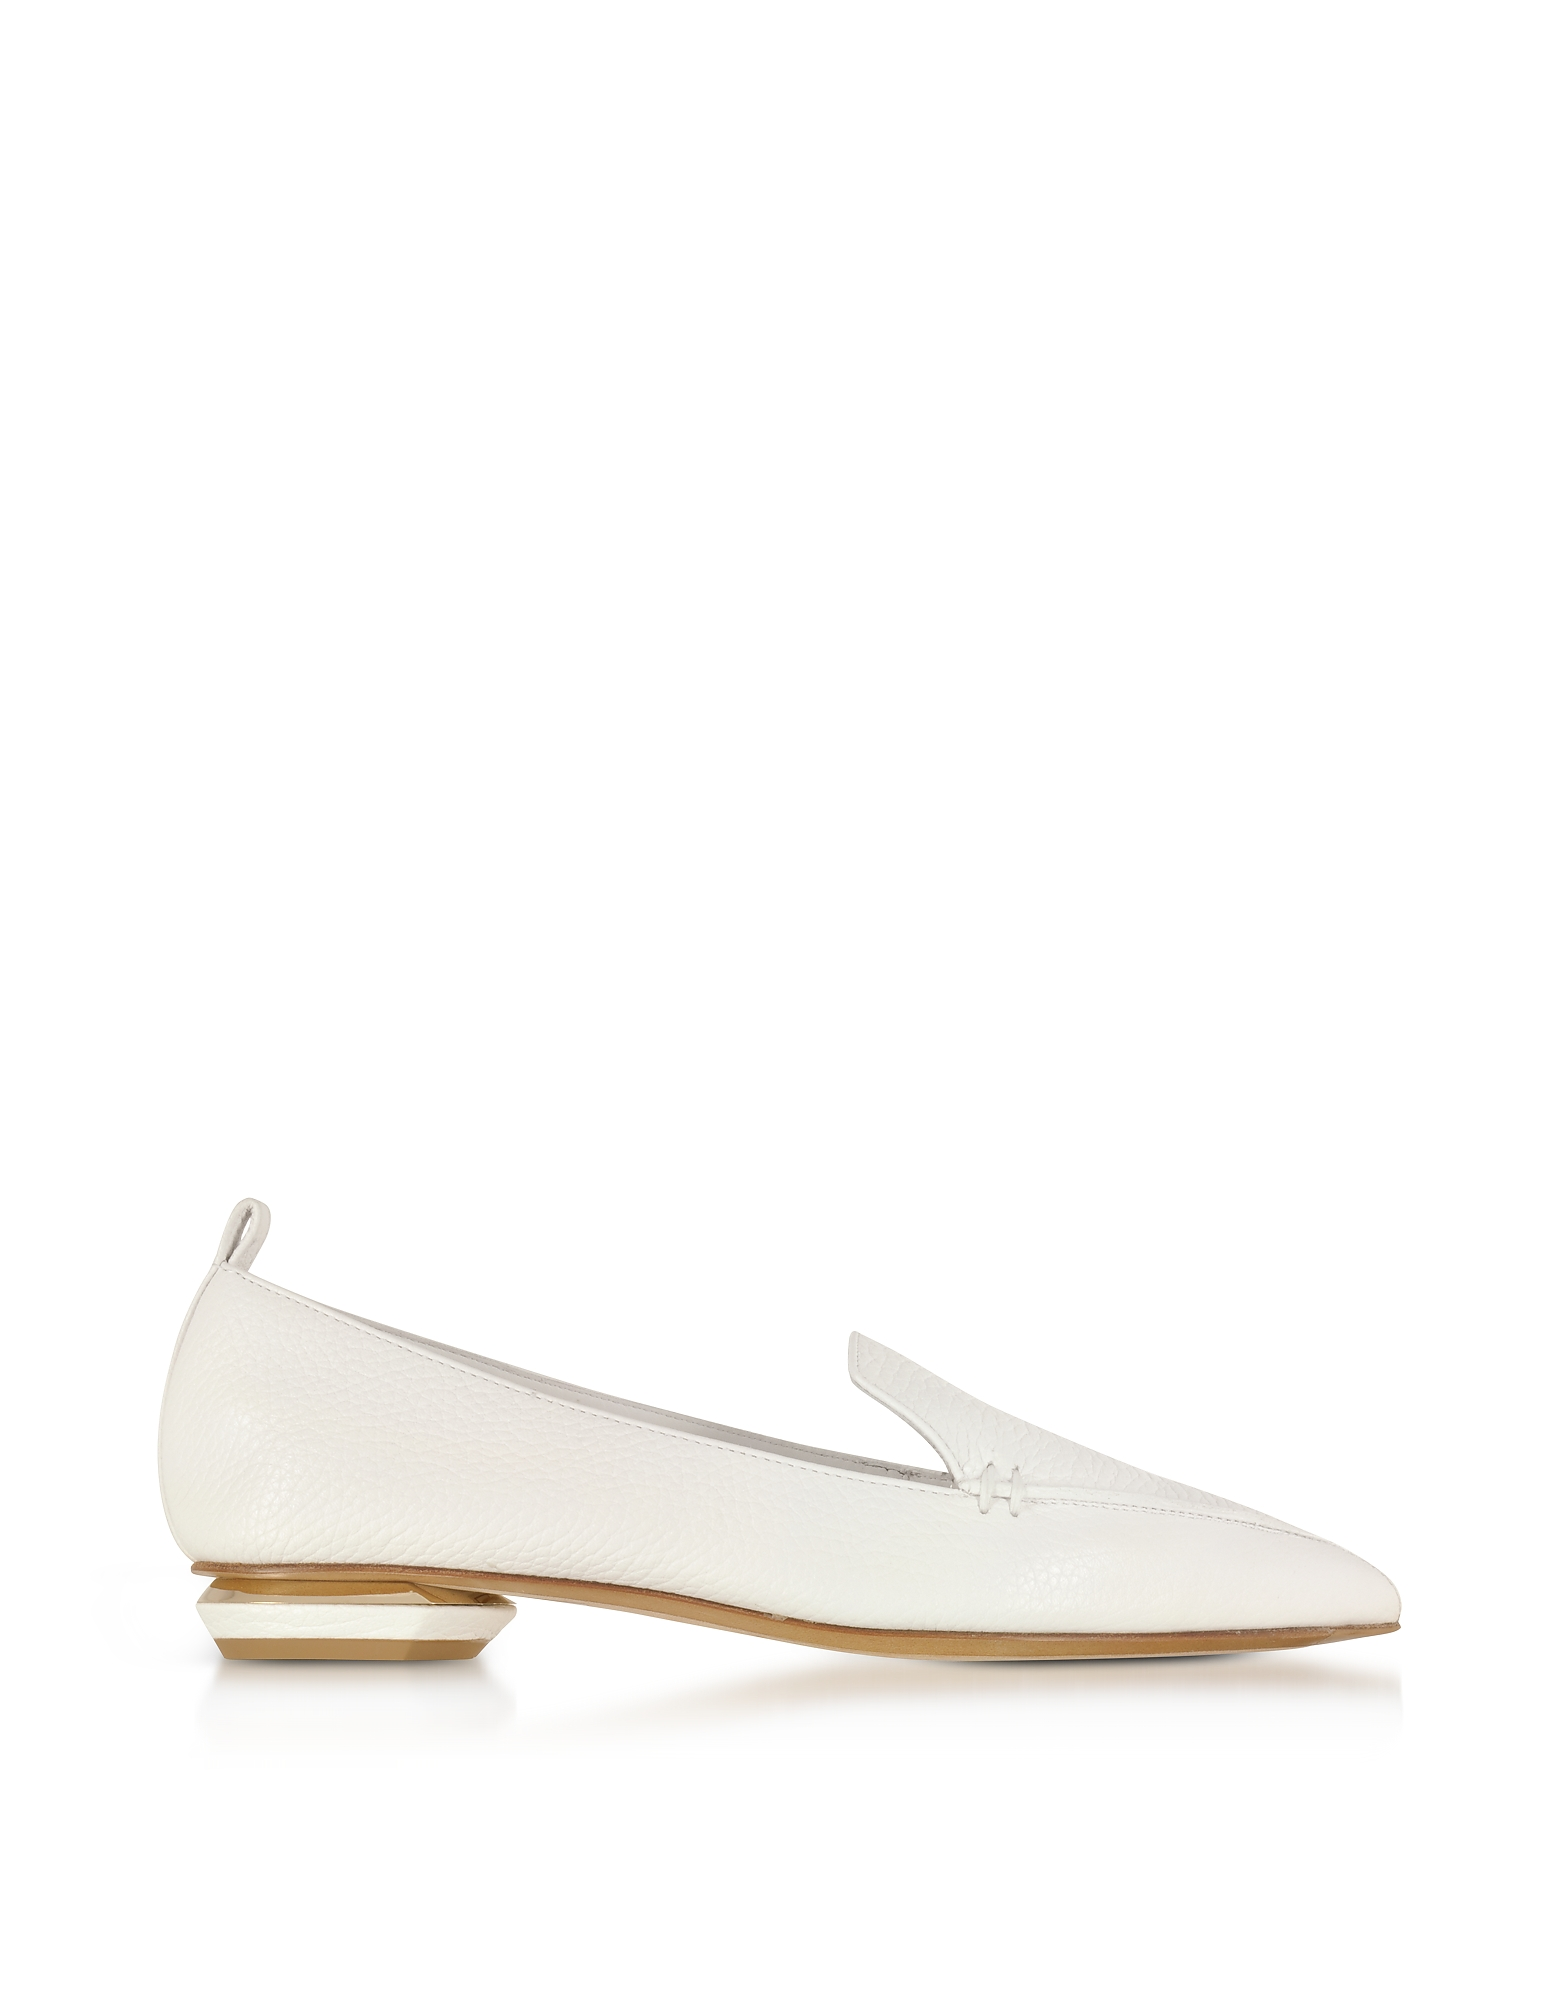 Nicholas Kirkwood Shoes, Beya White Leather Loafer